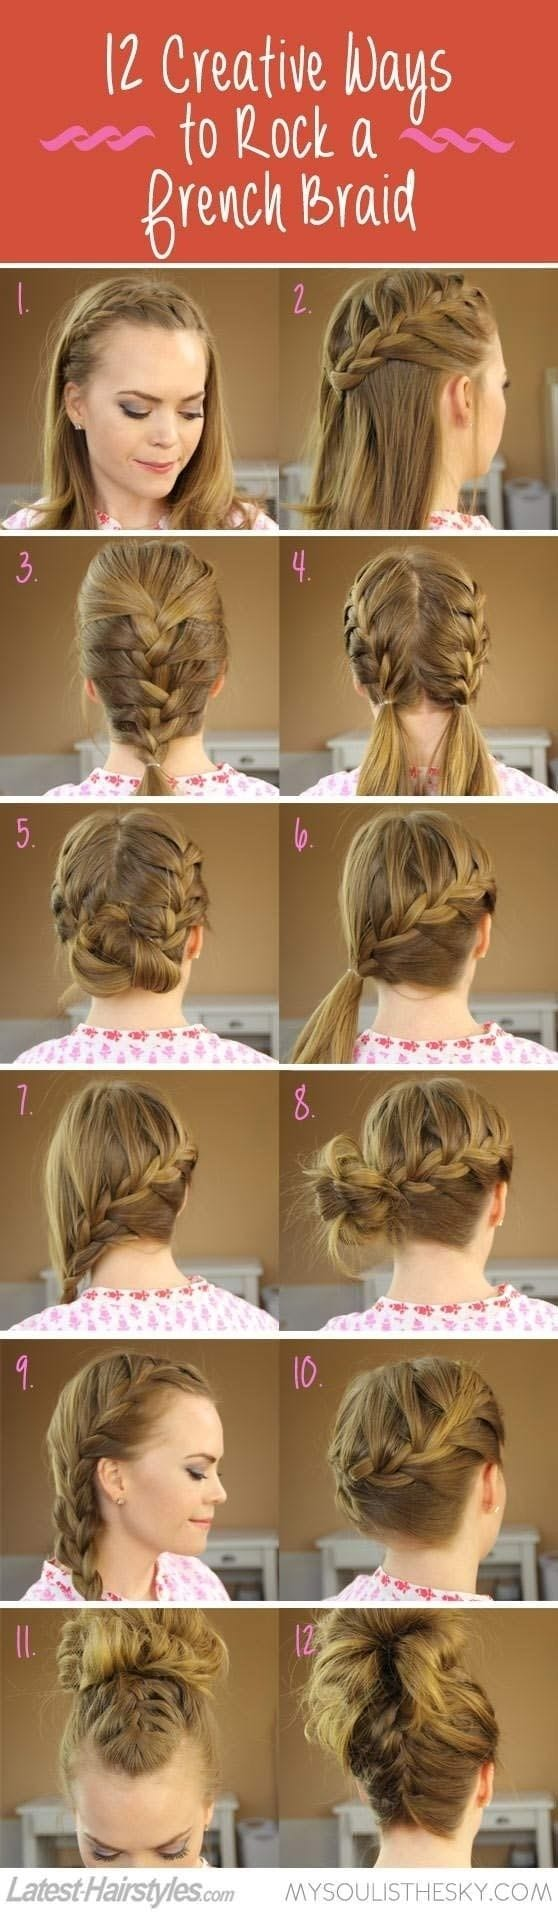 Surprising 20 Cute And Easy Braided Hairstyle Tutorials Latest Styles Hairstyles For Women Draintrainus